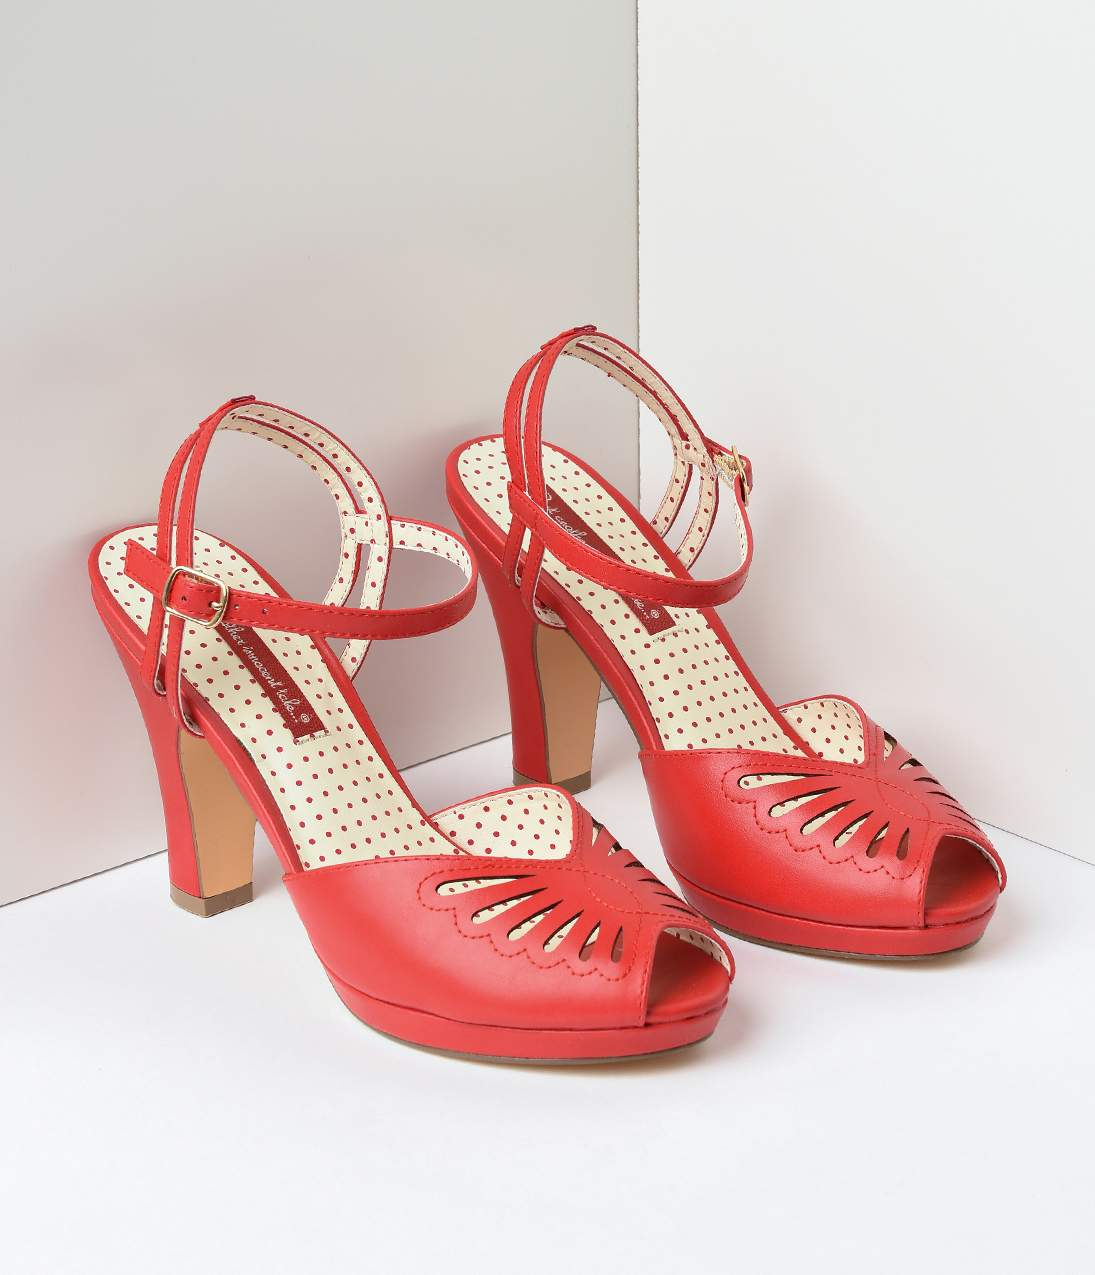 1940s Style Shoes, 40s Shoes B.a.i.t. 1940S Red Butterfly Cut Out Loraine Platform Sandals $78.00 AT vintagedancer.com